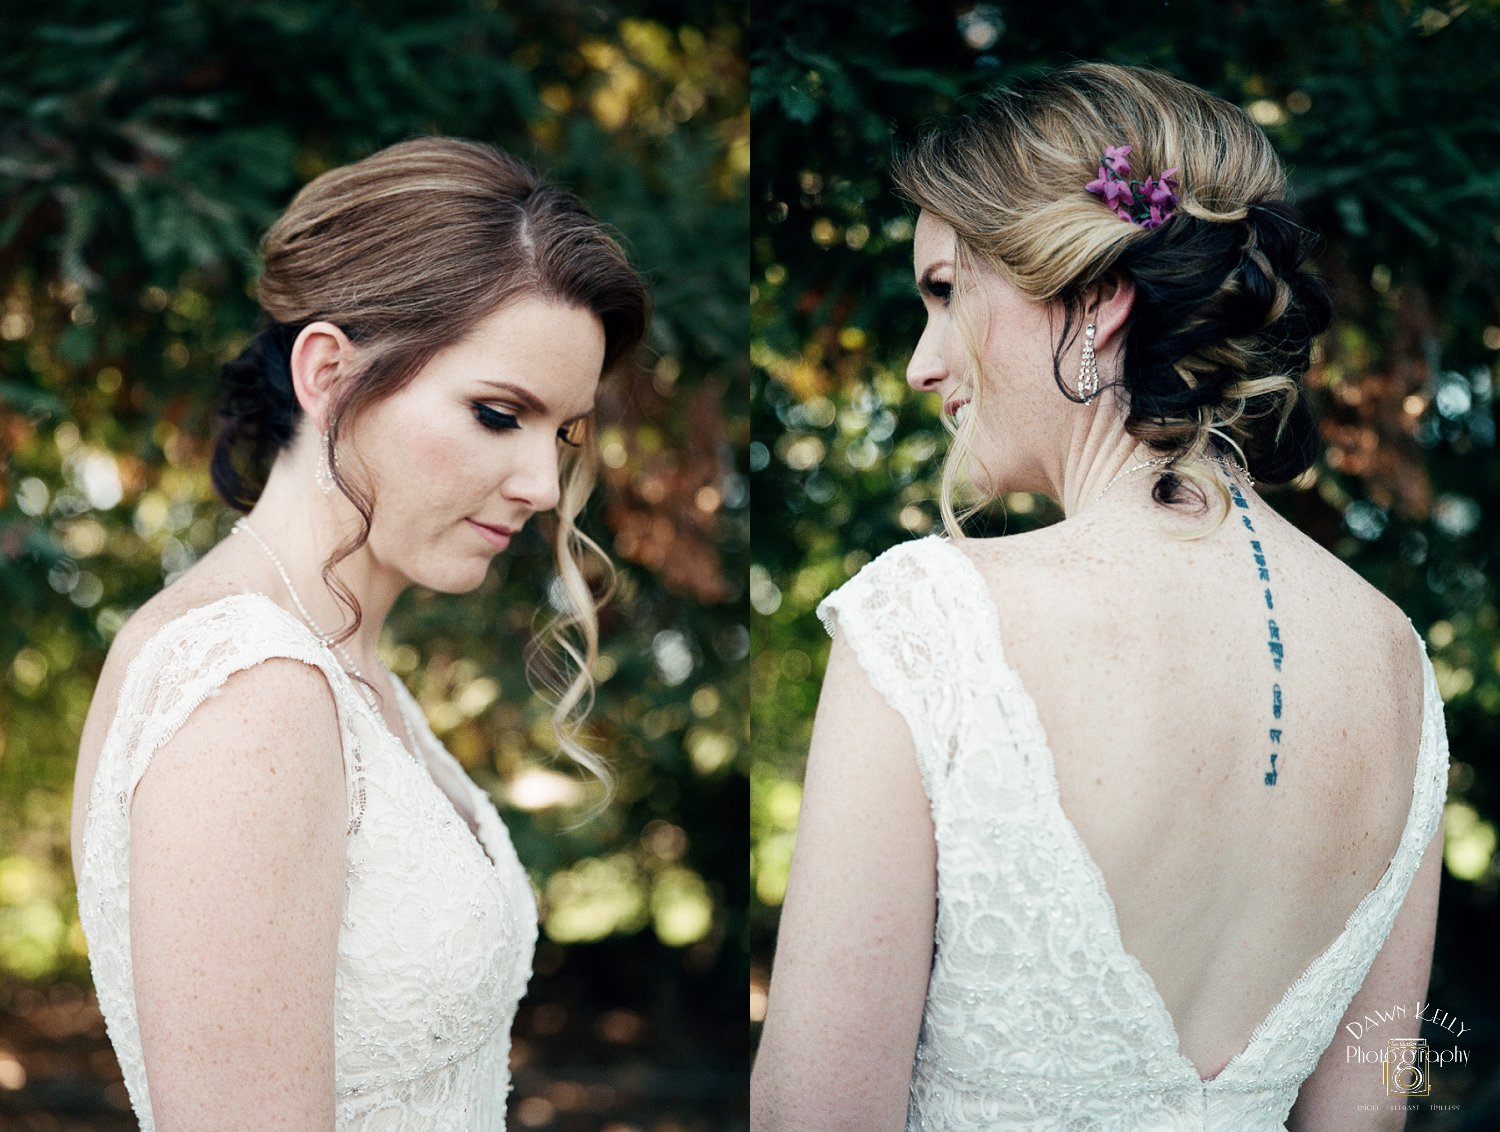 Summer Artistry did an AMAZING job on Lauren's bridal hair and makeup, as usual.